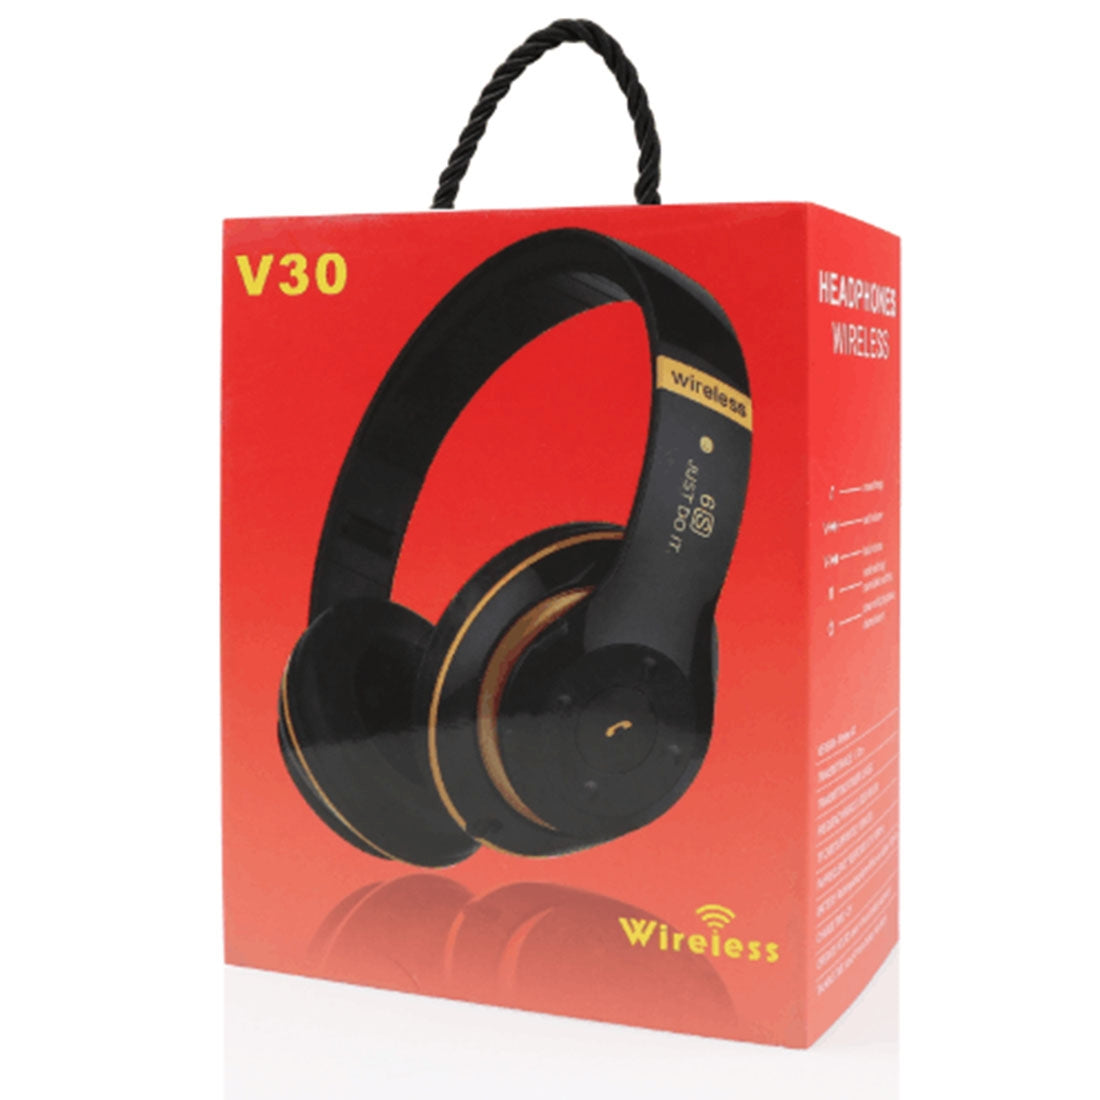 V30 Wireless Bluetooth 4.2 Headphone with Mic & FM & TF Card & Handfree Function, For iPhone, iPad, iPod, Samsung, HTC, Sony, Huawei, Xiaomi and other Audio Devices(Brown)